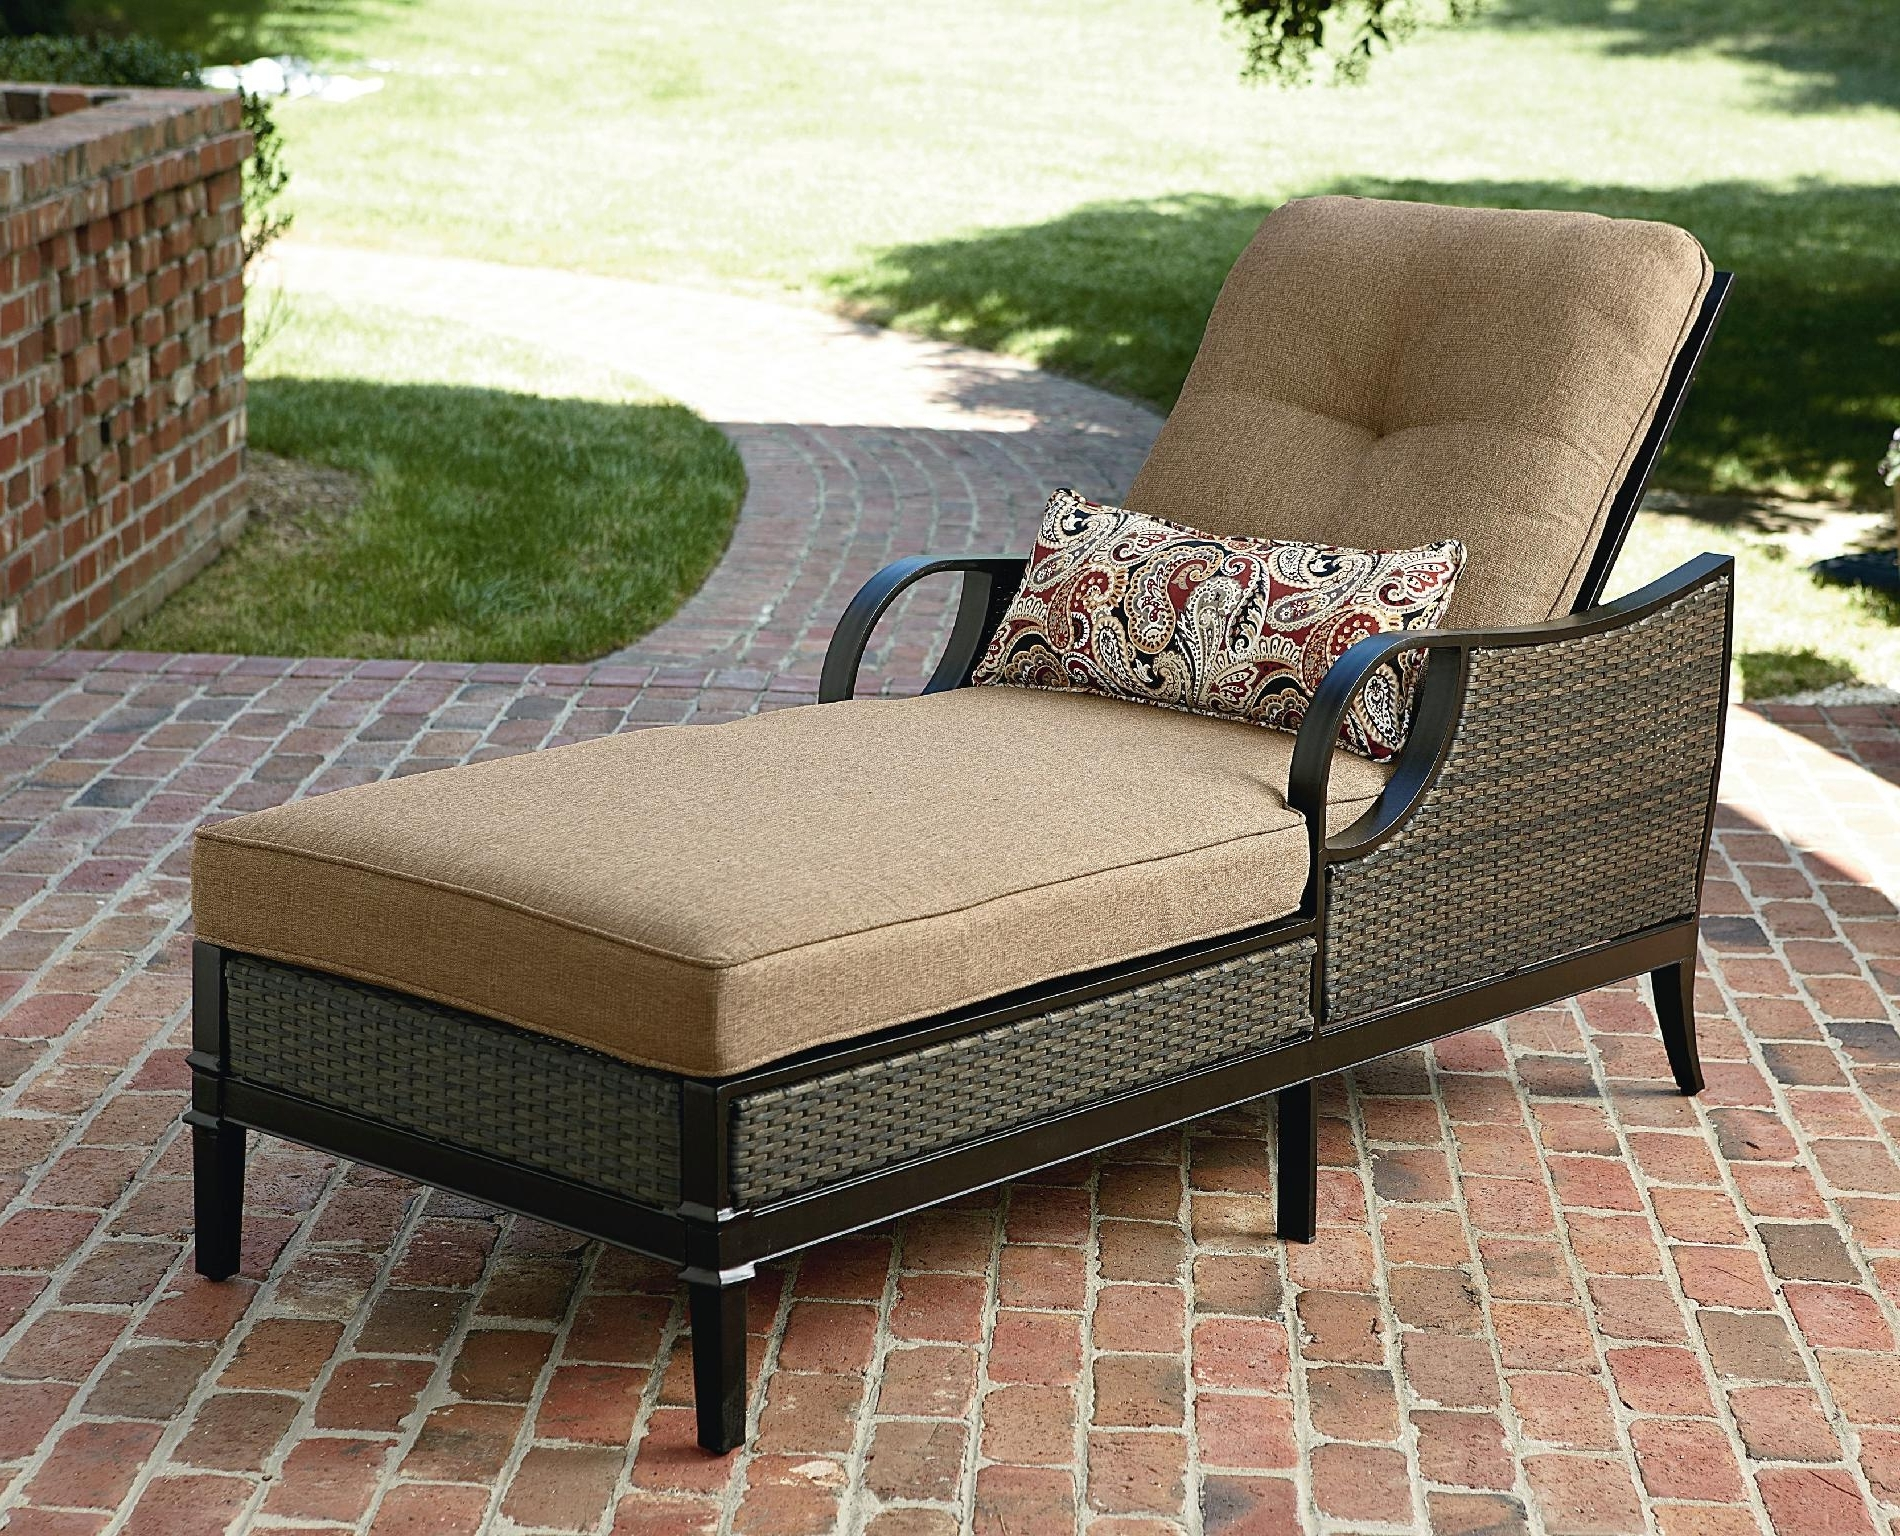 Patio Chaise Lounge Ideas — Optimizing Home Decor Ideas : Amazing Intended For Famous Patio Chaise Lounges (View 15 of 15)